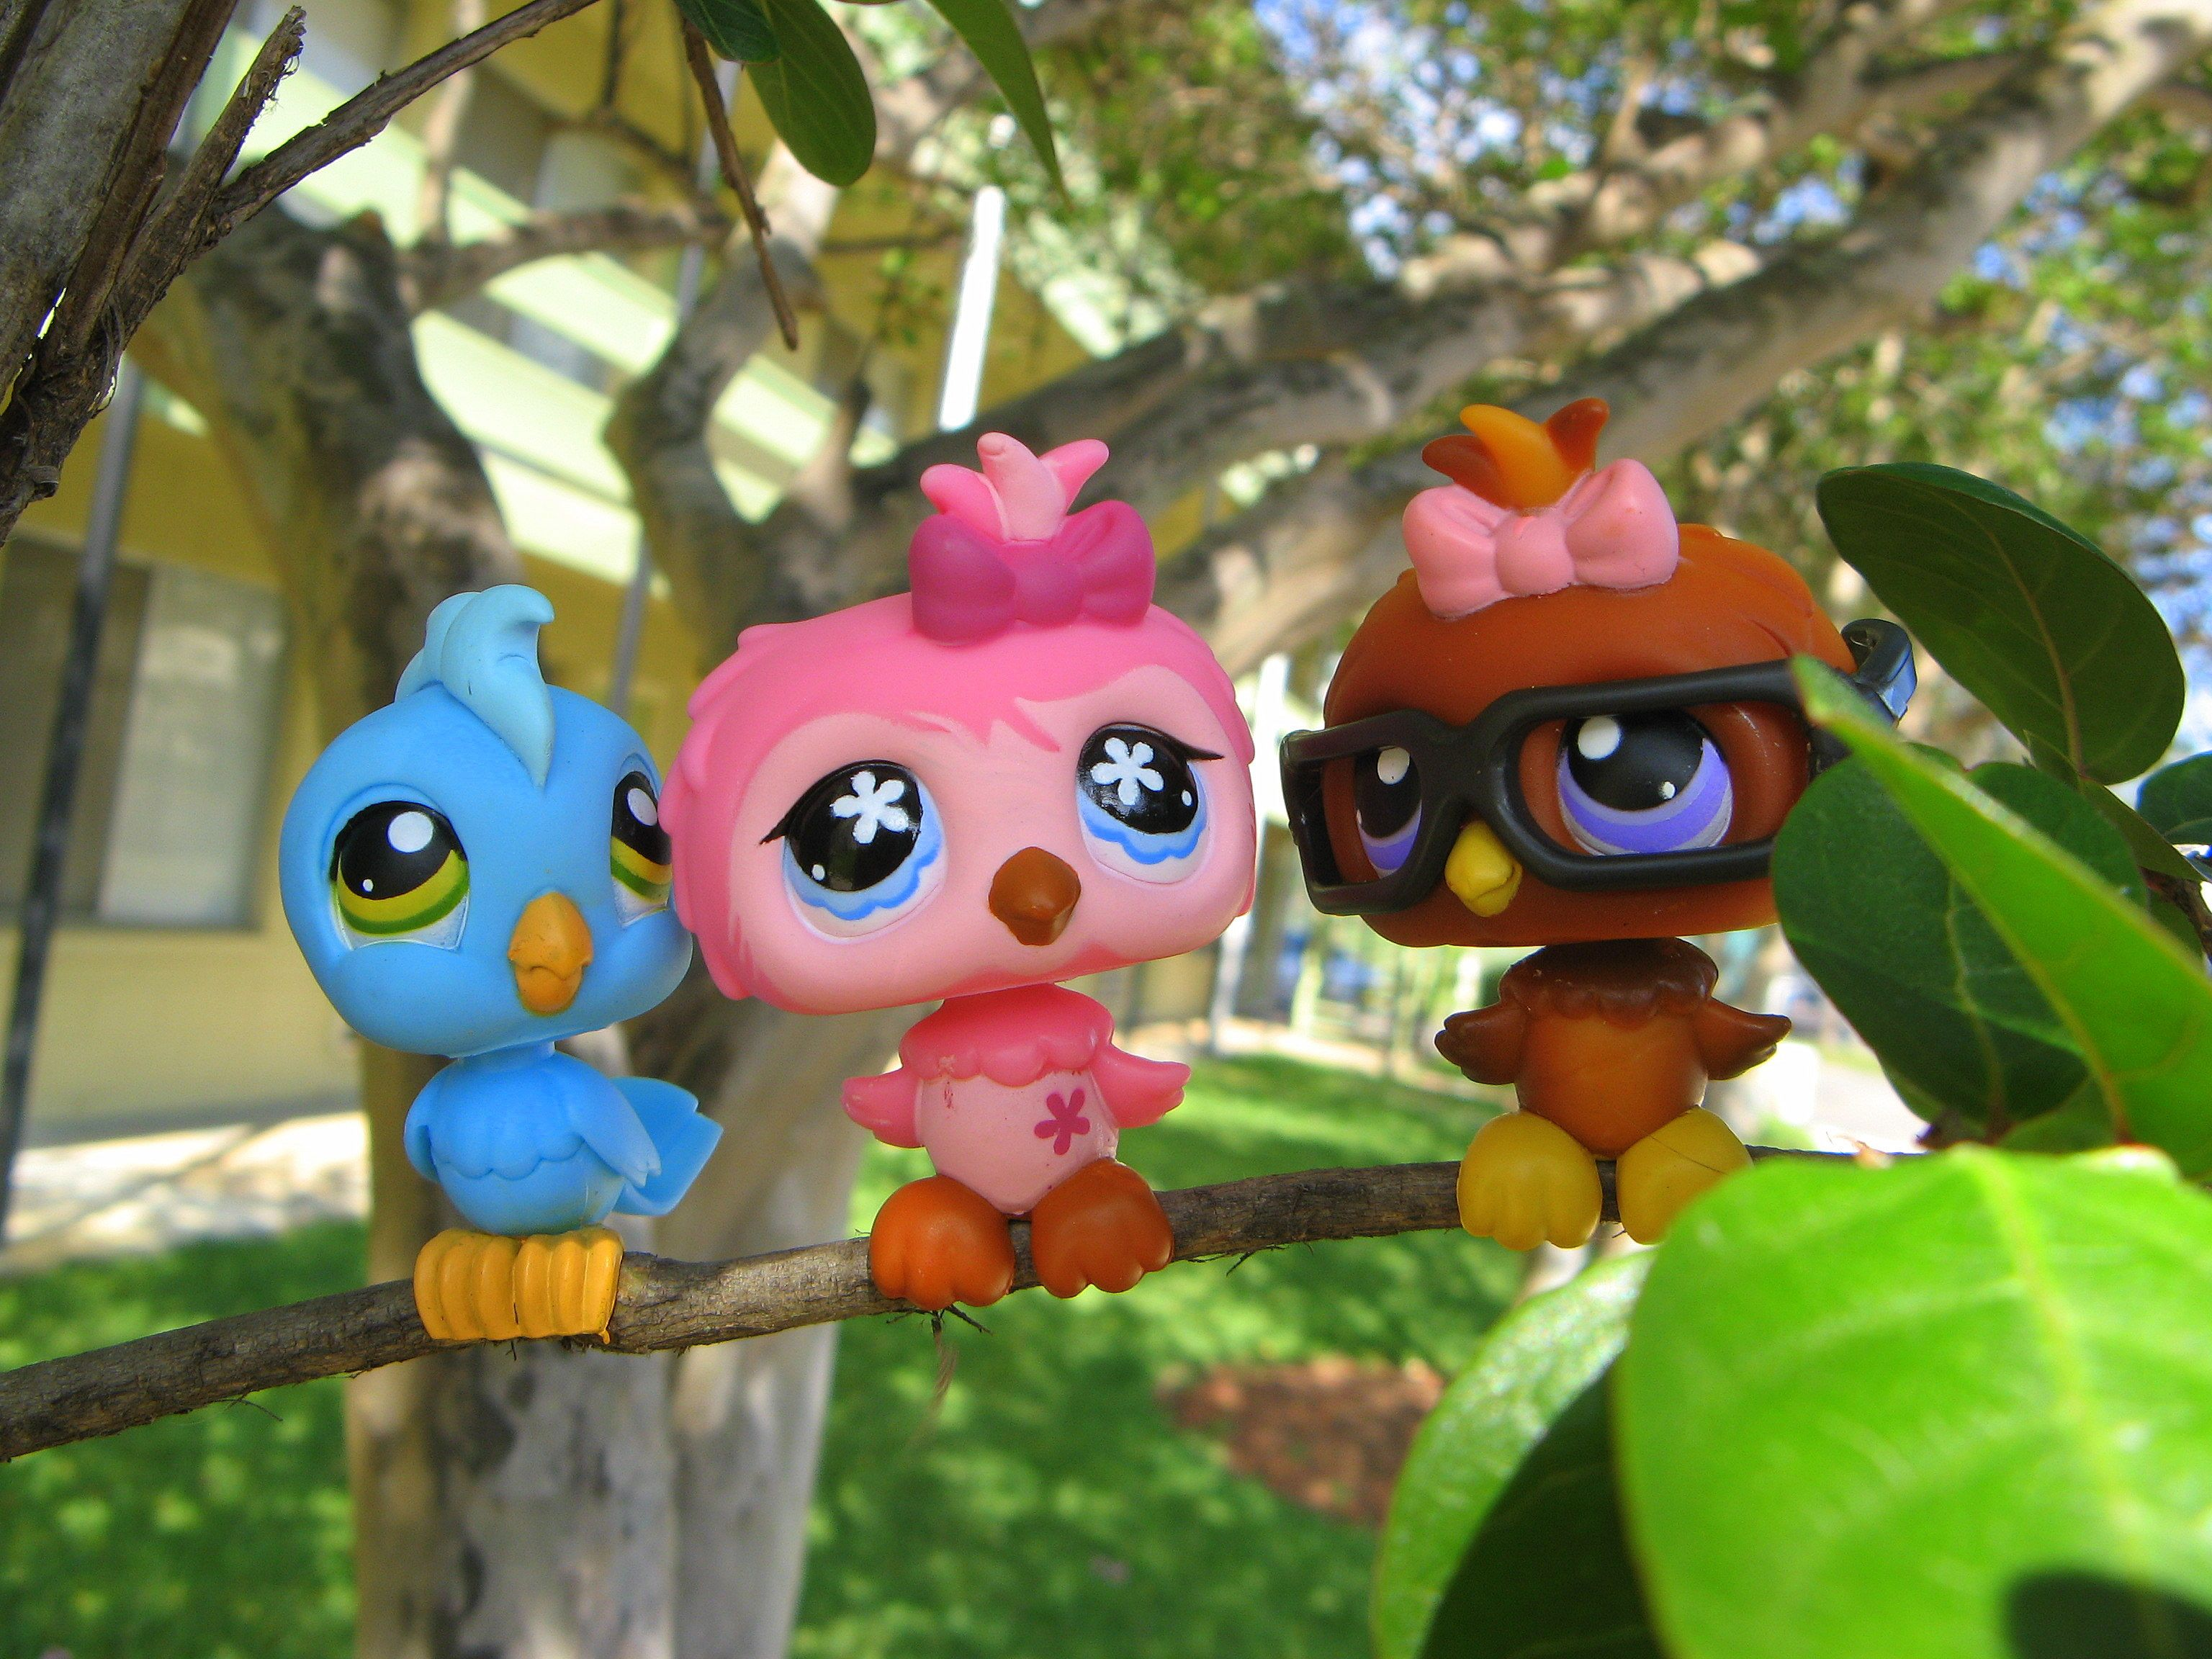 LPS Birds omg love the one with glasses Little pet shop